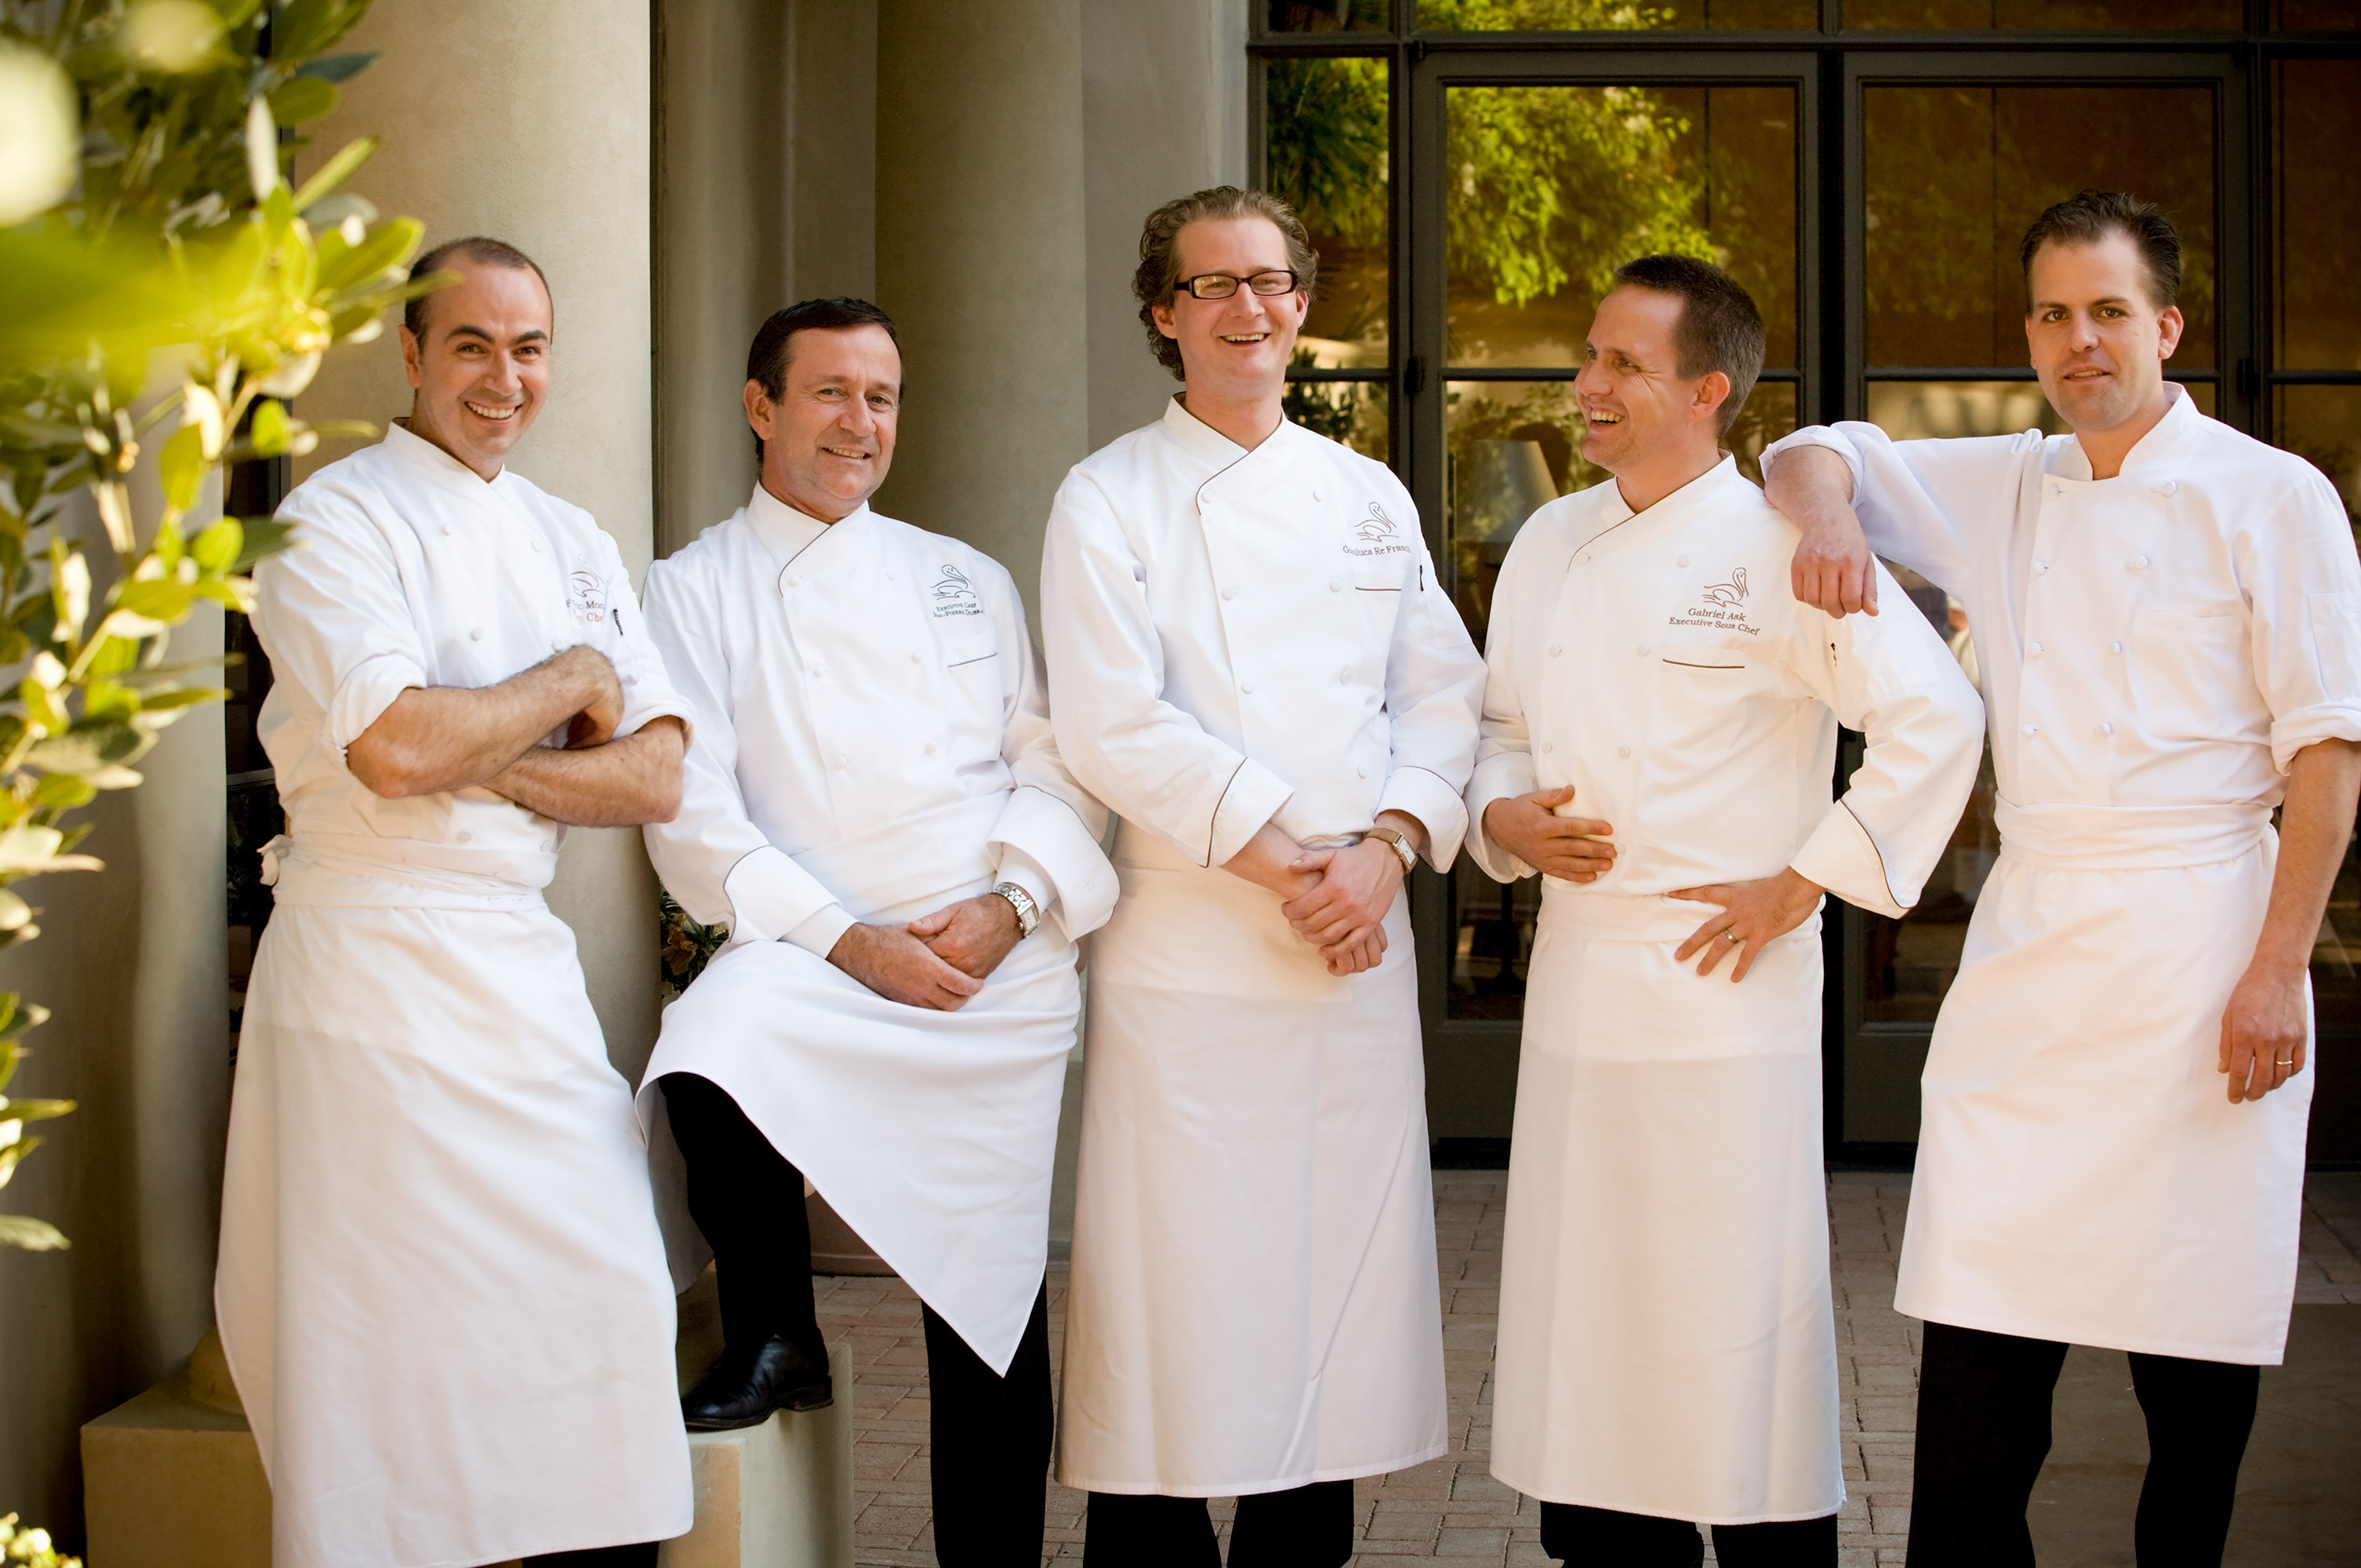 Lifestyle-035-culinary-staff-chefs-luxury-resort